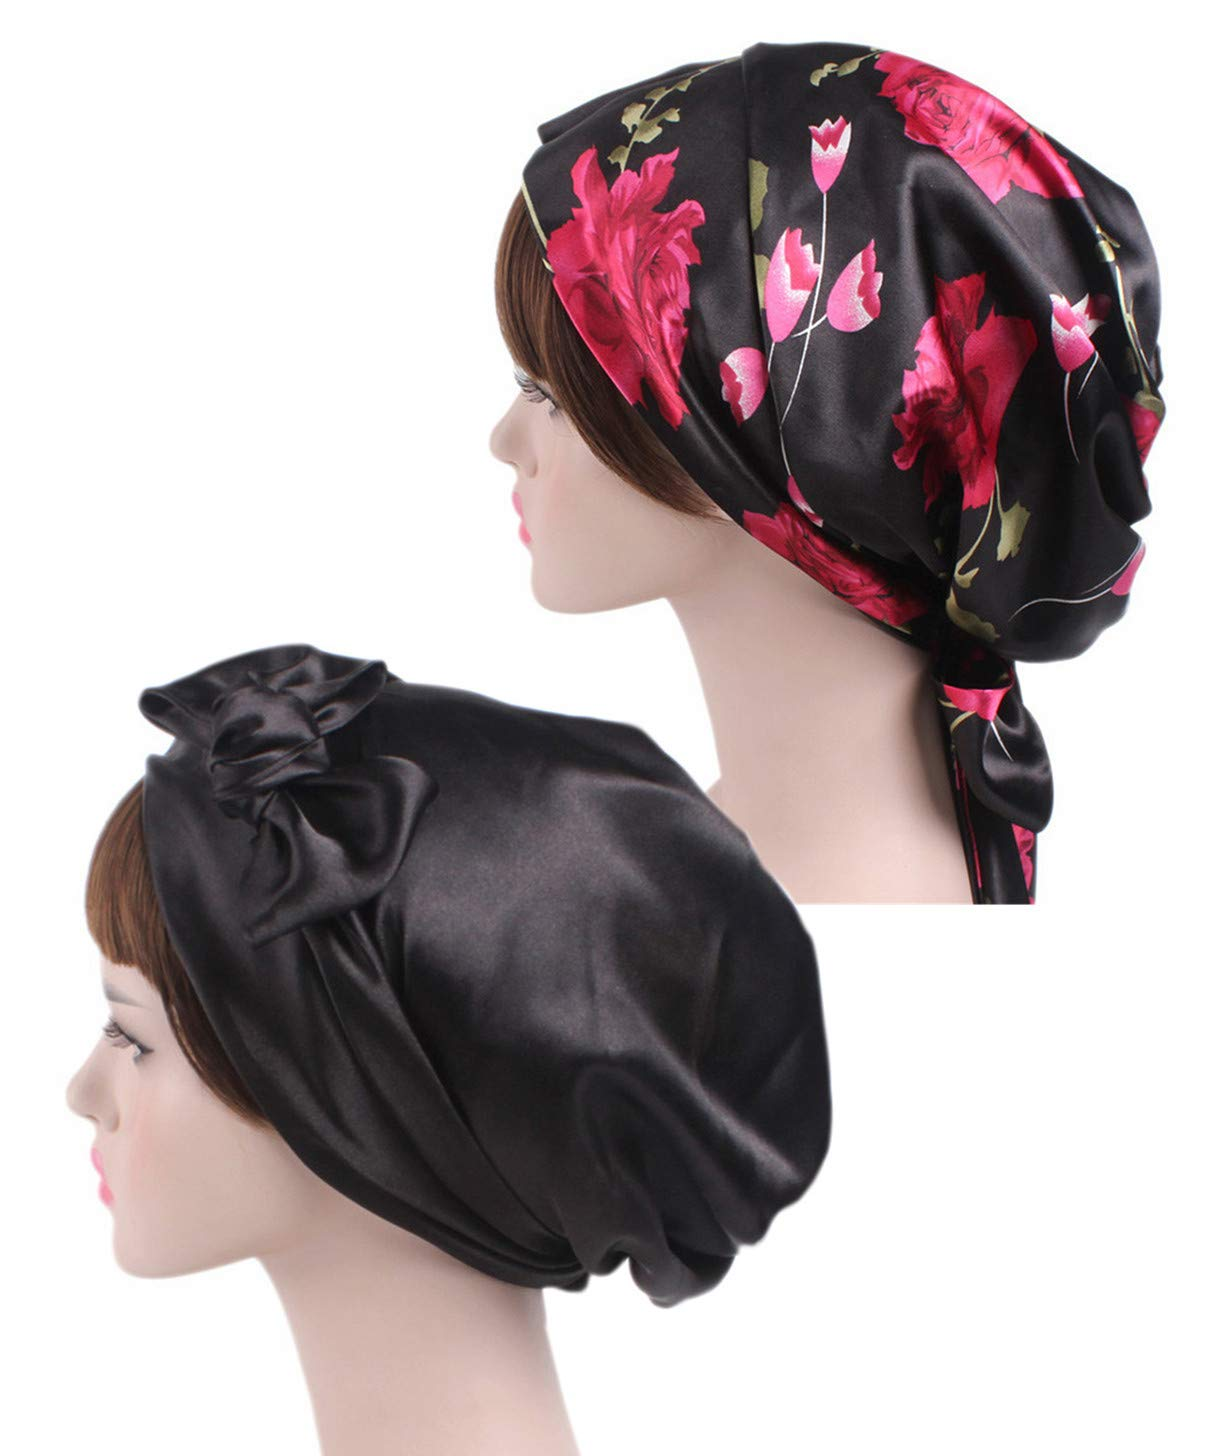 Satin Silk Hair Head Scarf - Floral Women 2 Packs Bonnet Night Sleeping Cap Chemo Hat Salon Soft Satin Patient Sleep Slouch Slouchy For Long Curly Natural